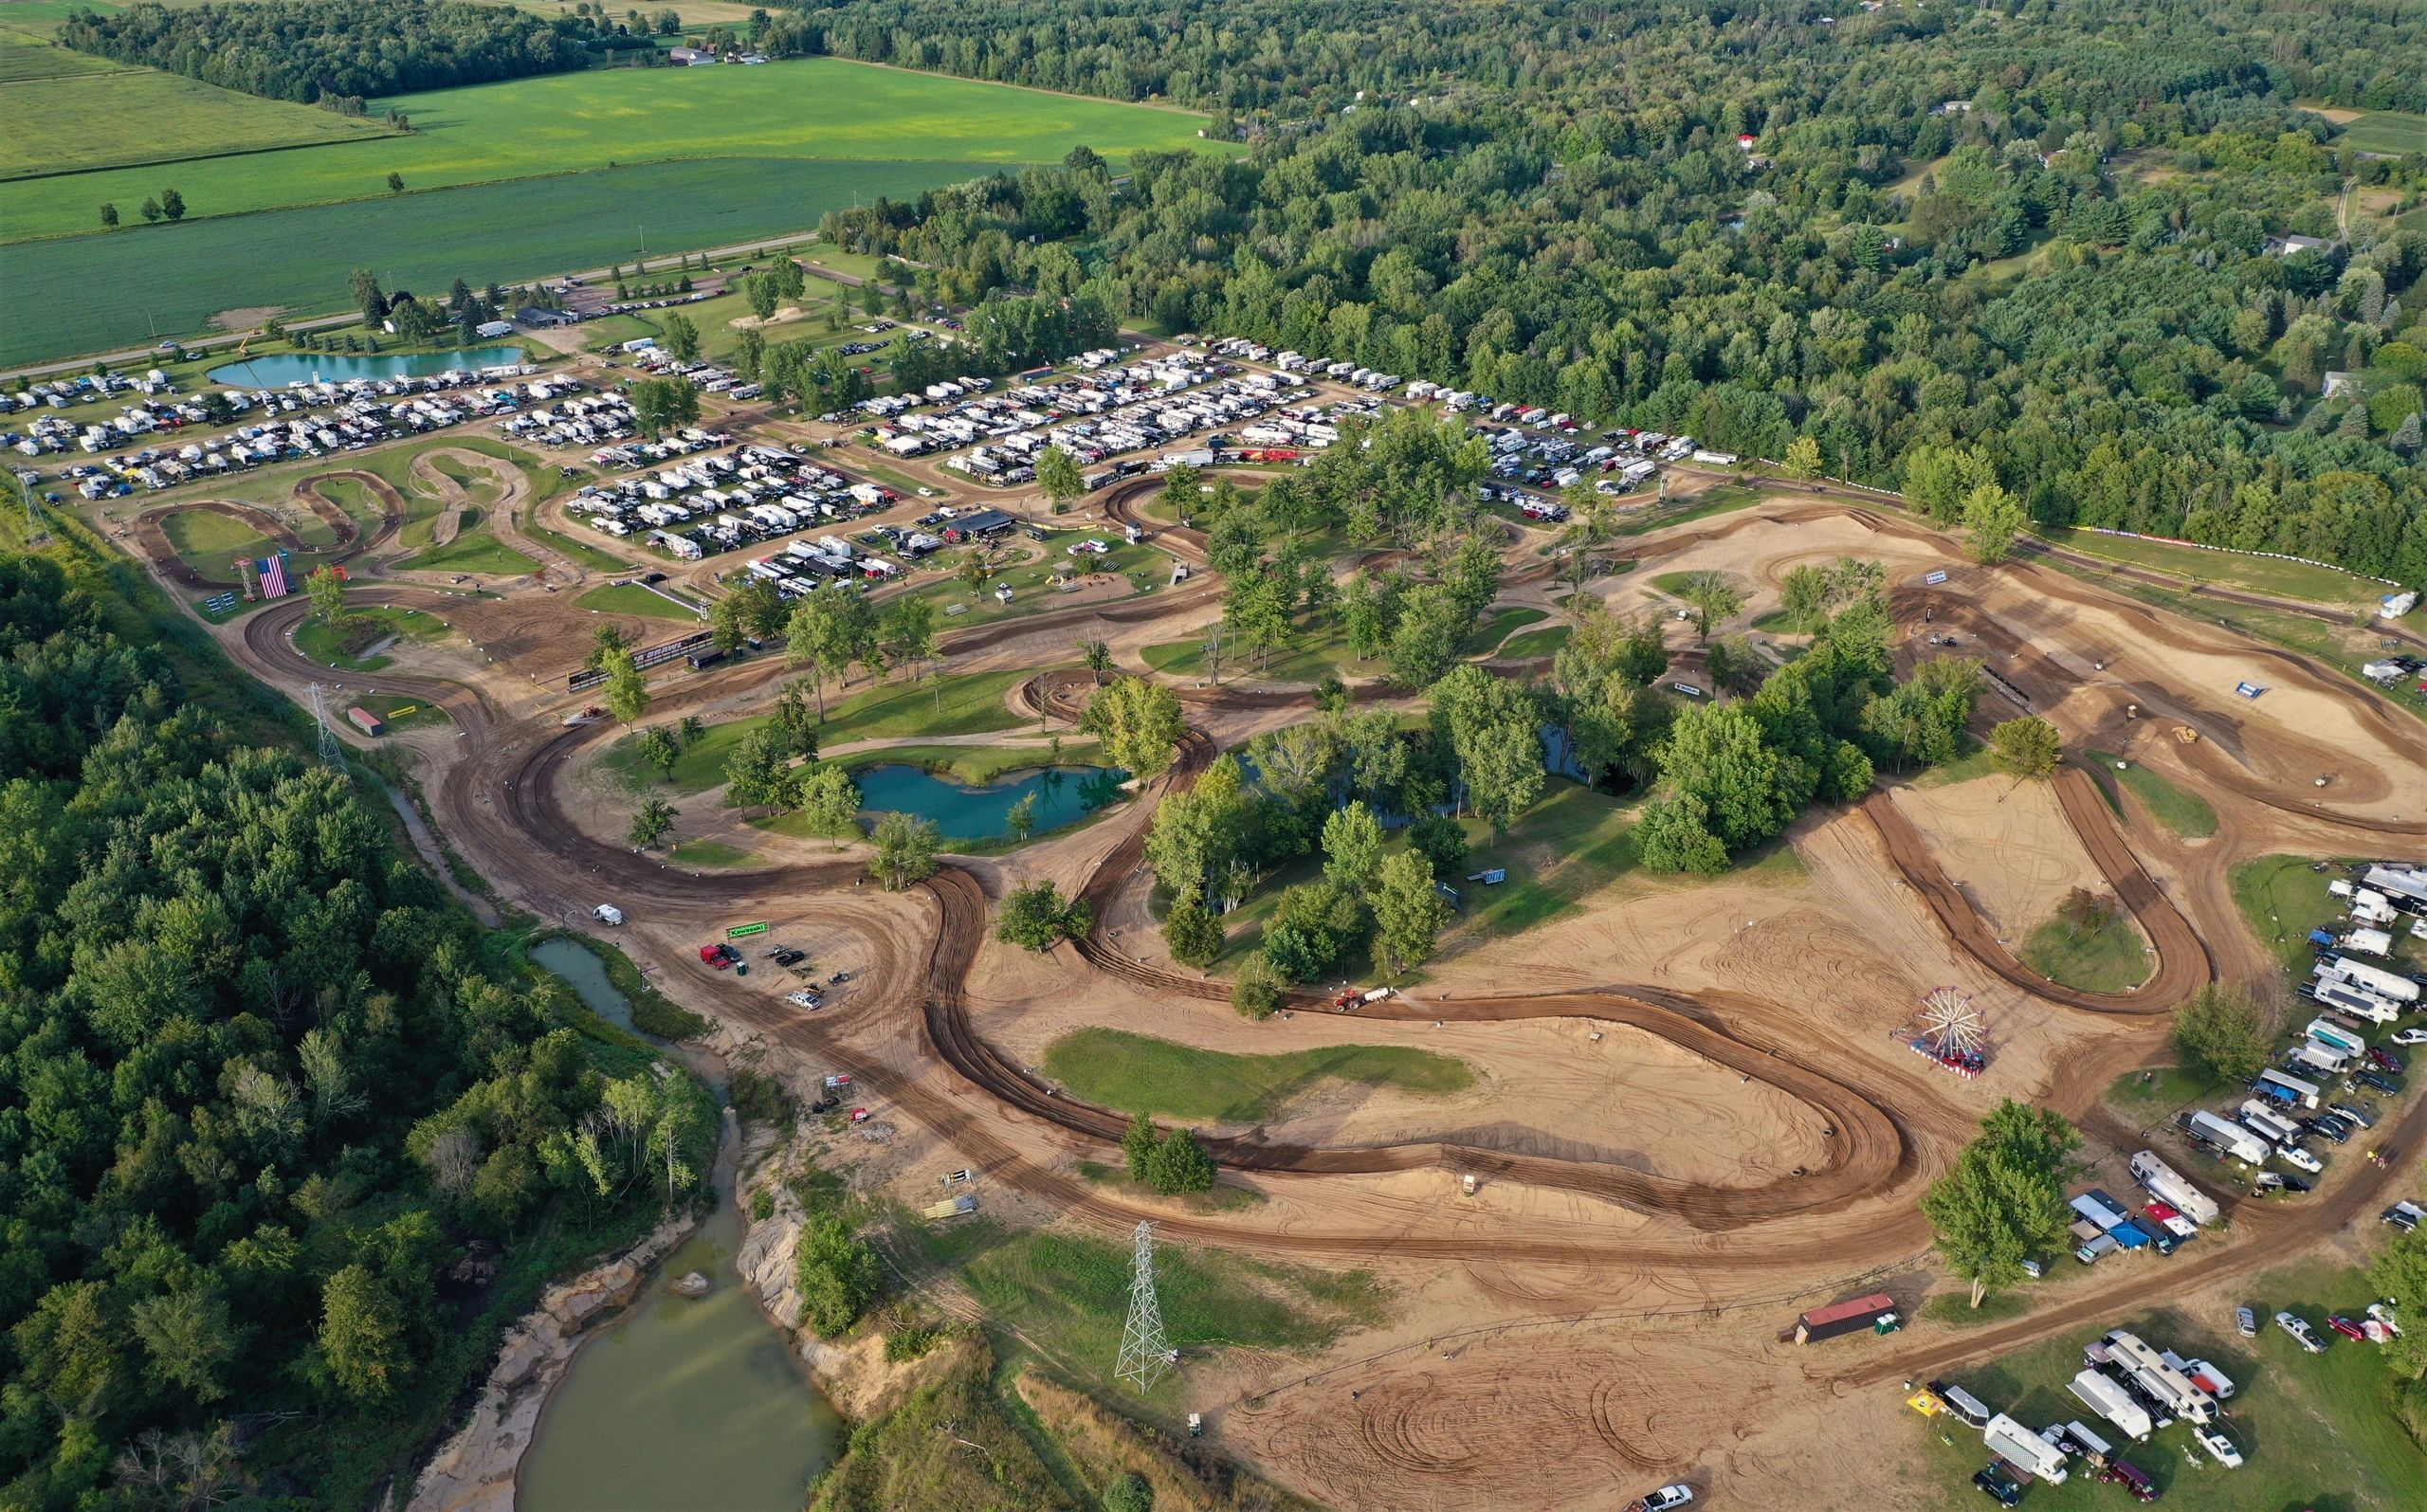 MICHIGAN MOTOCROSS TRACK